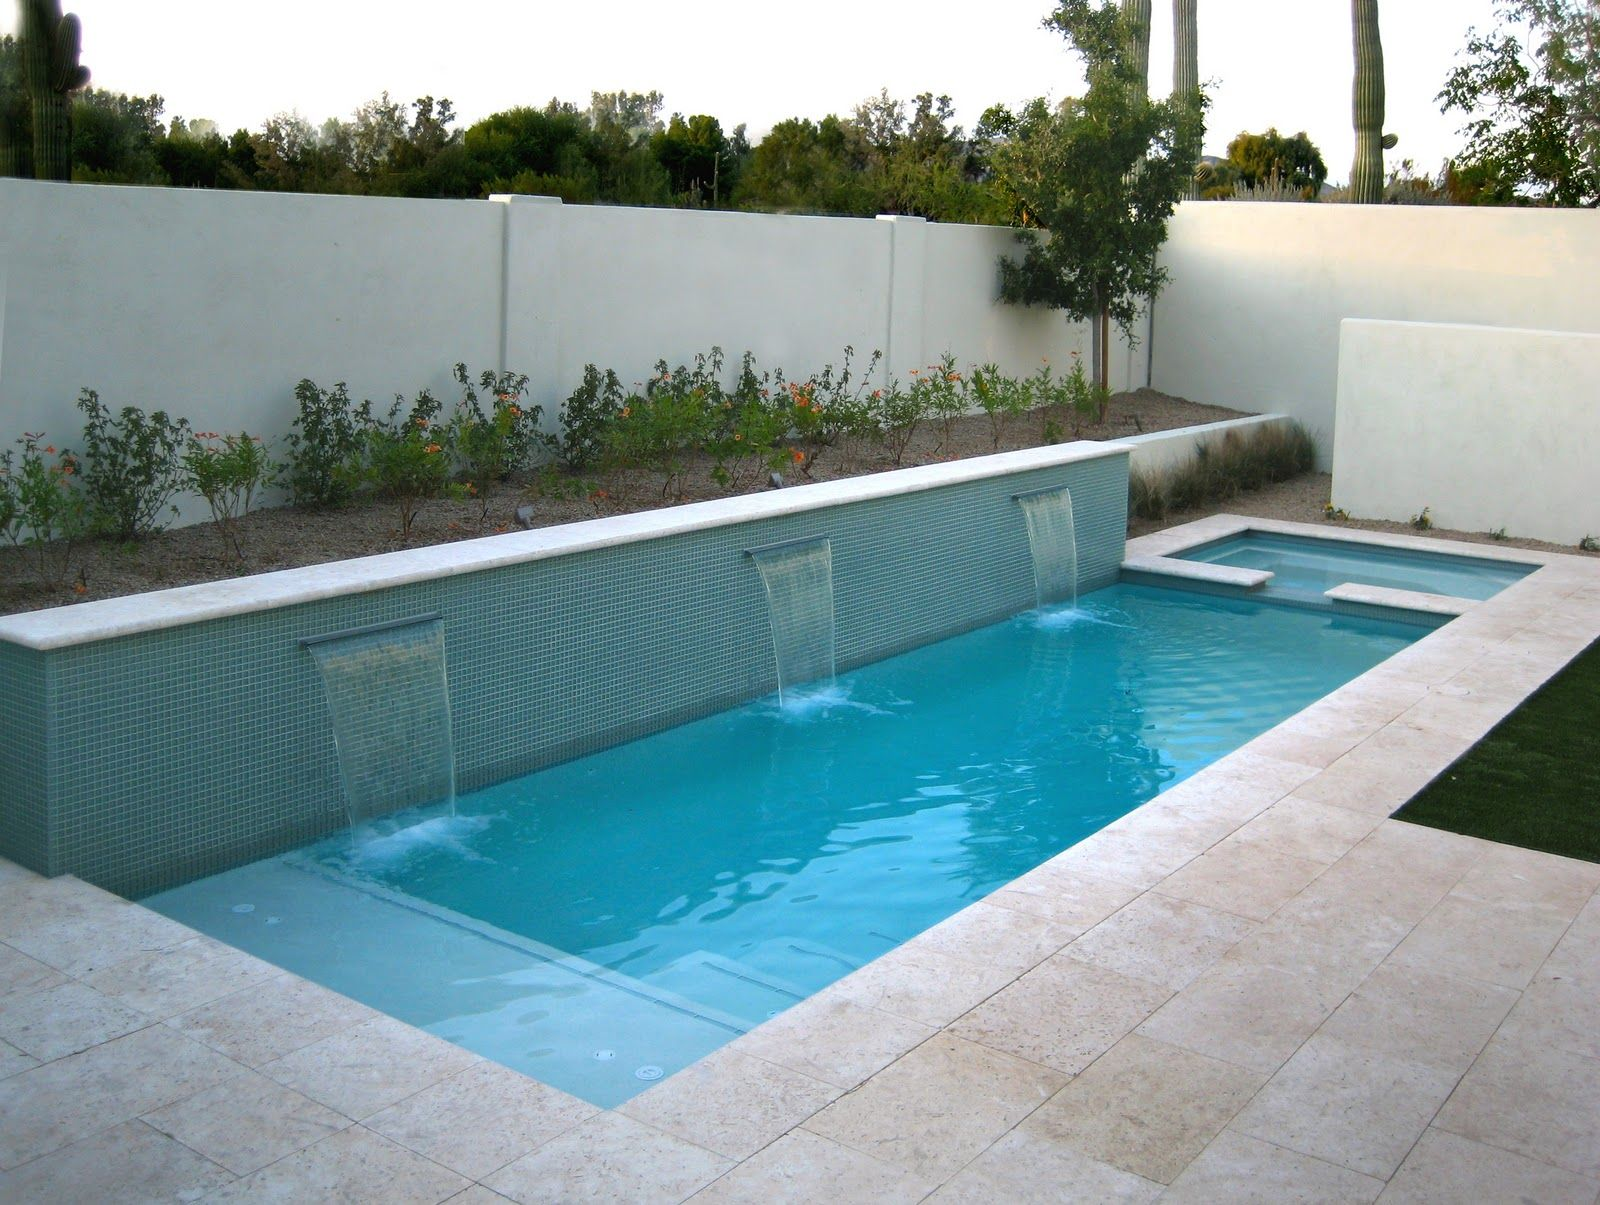 Smaal Pool Small Inground Pool Swimming Pools Backyard Small Pool Design